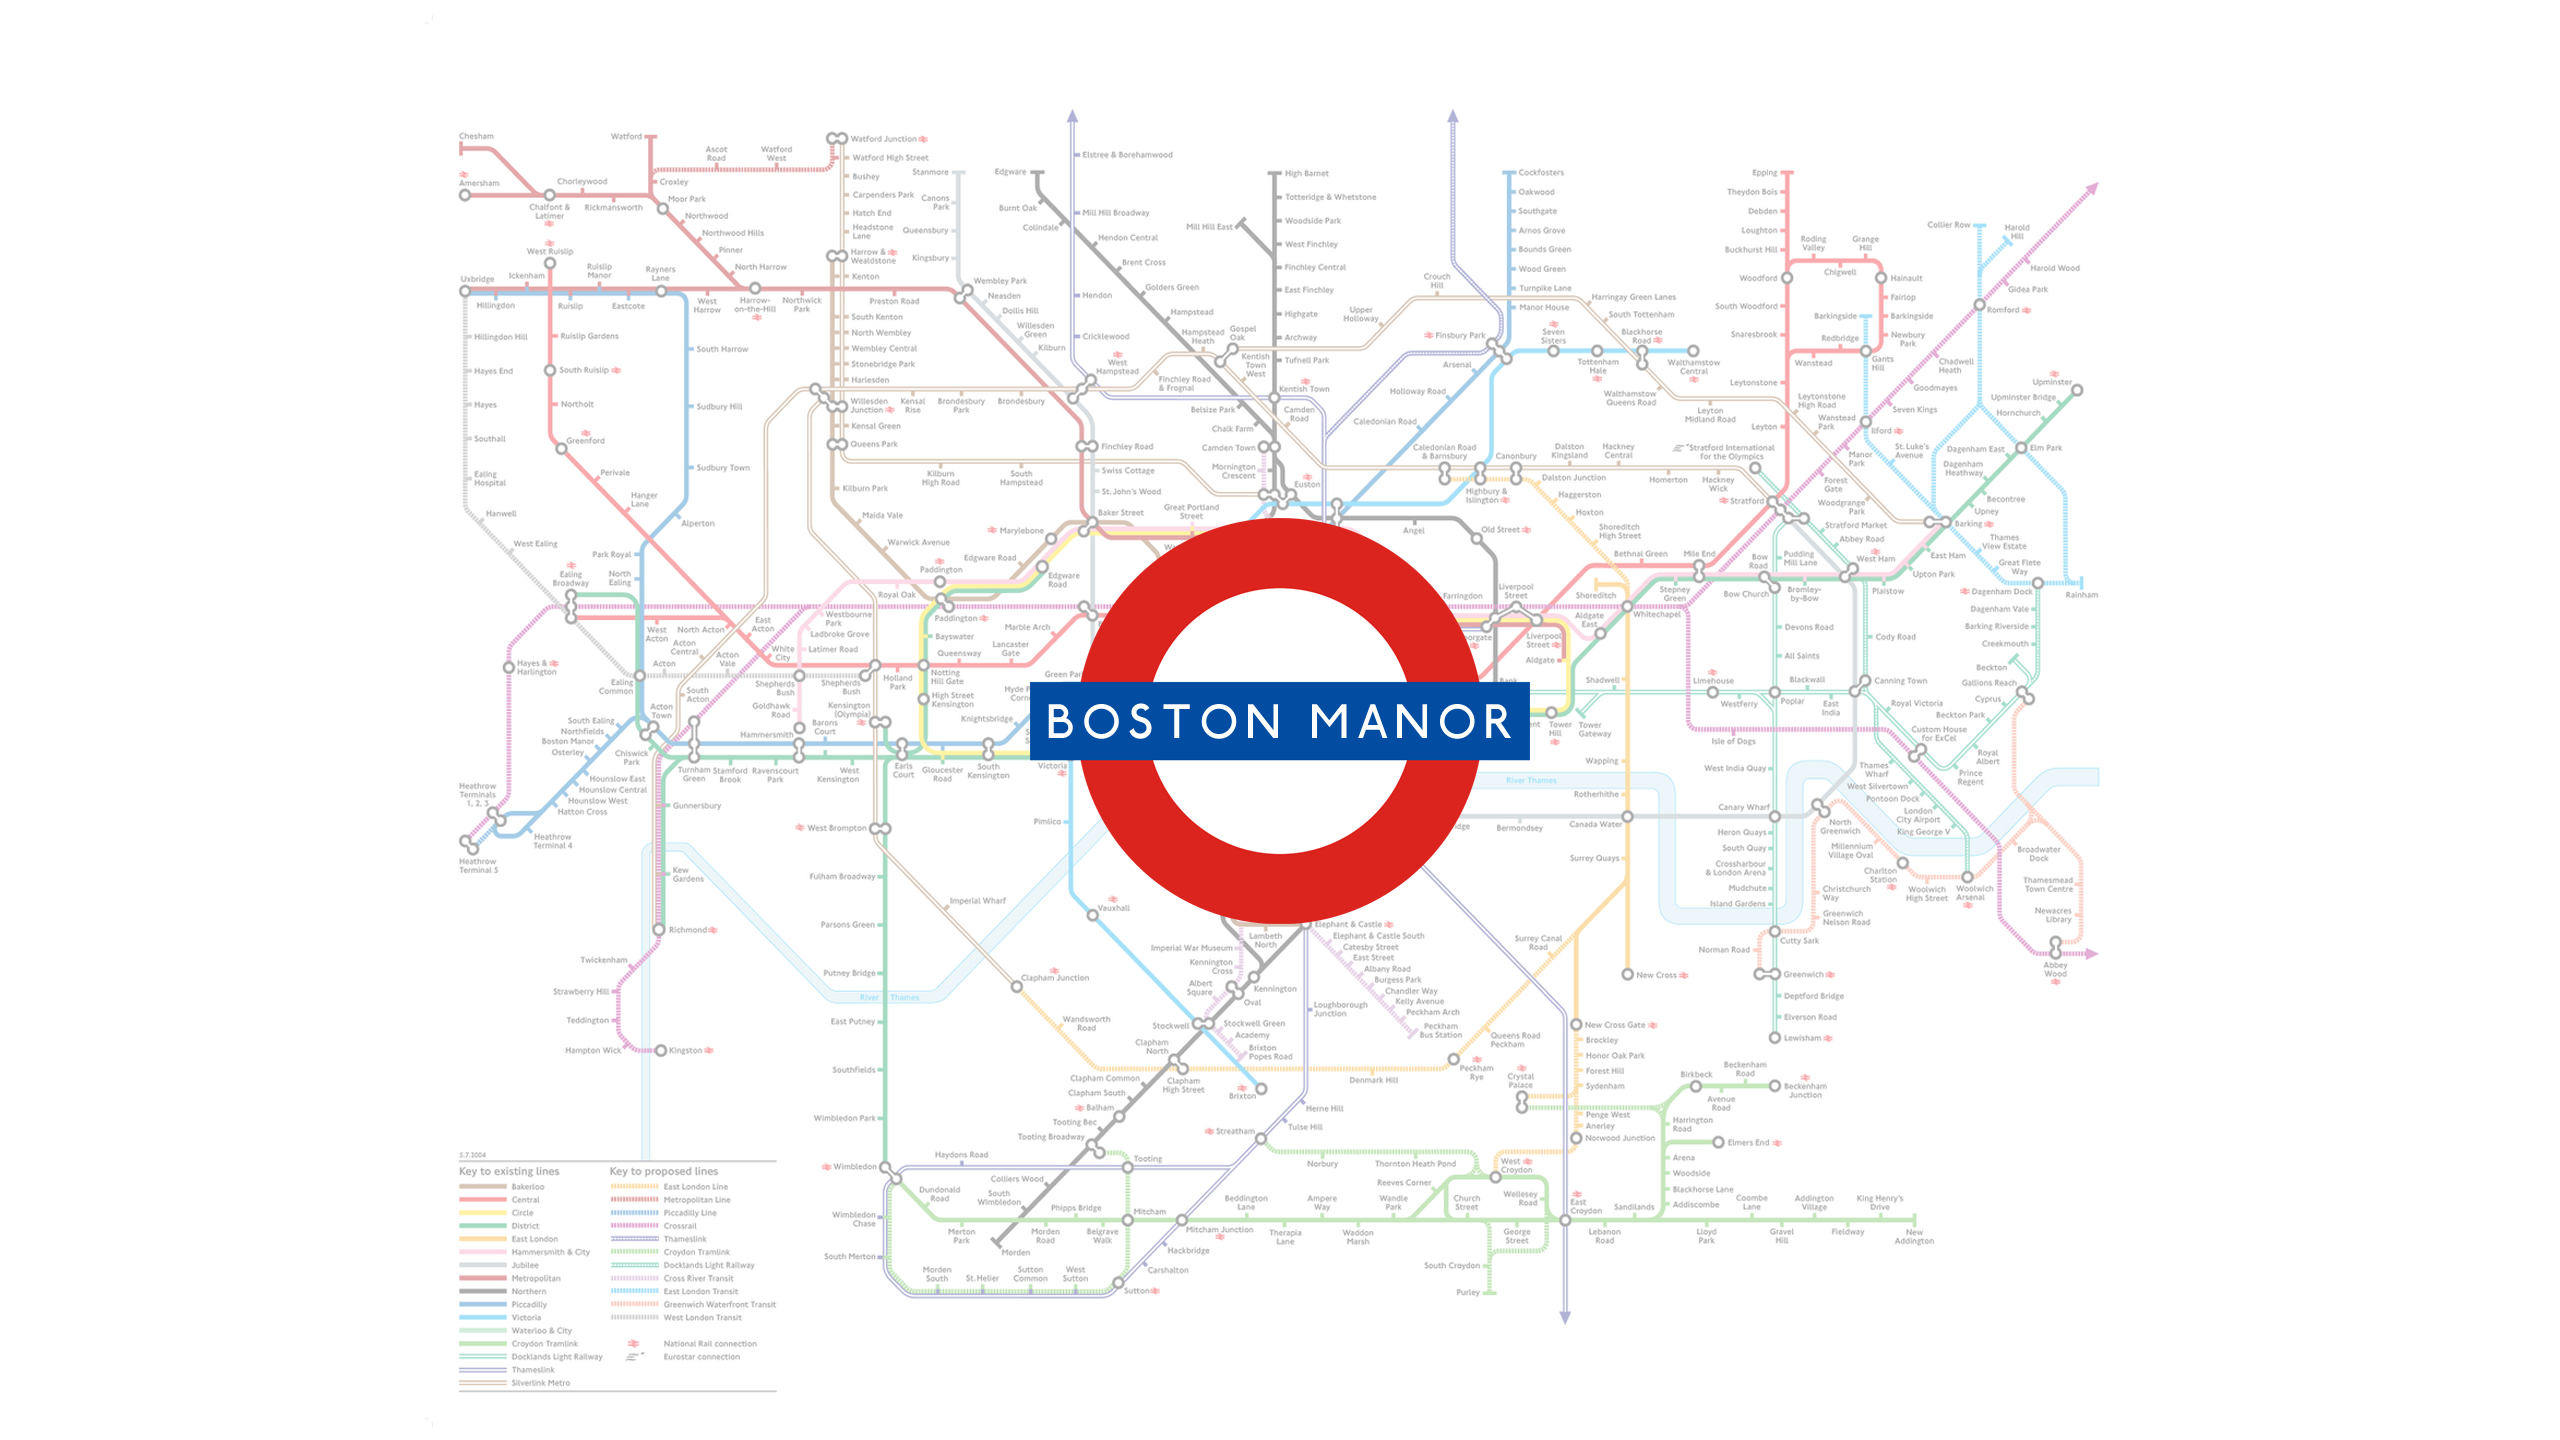 Boston Manor (Map)